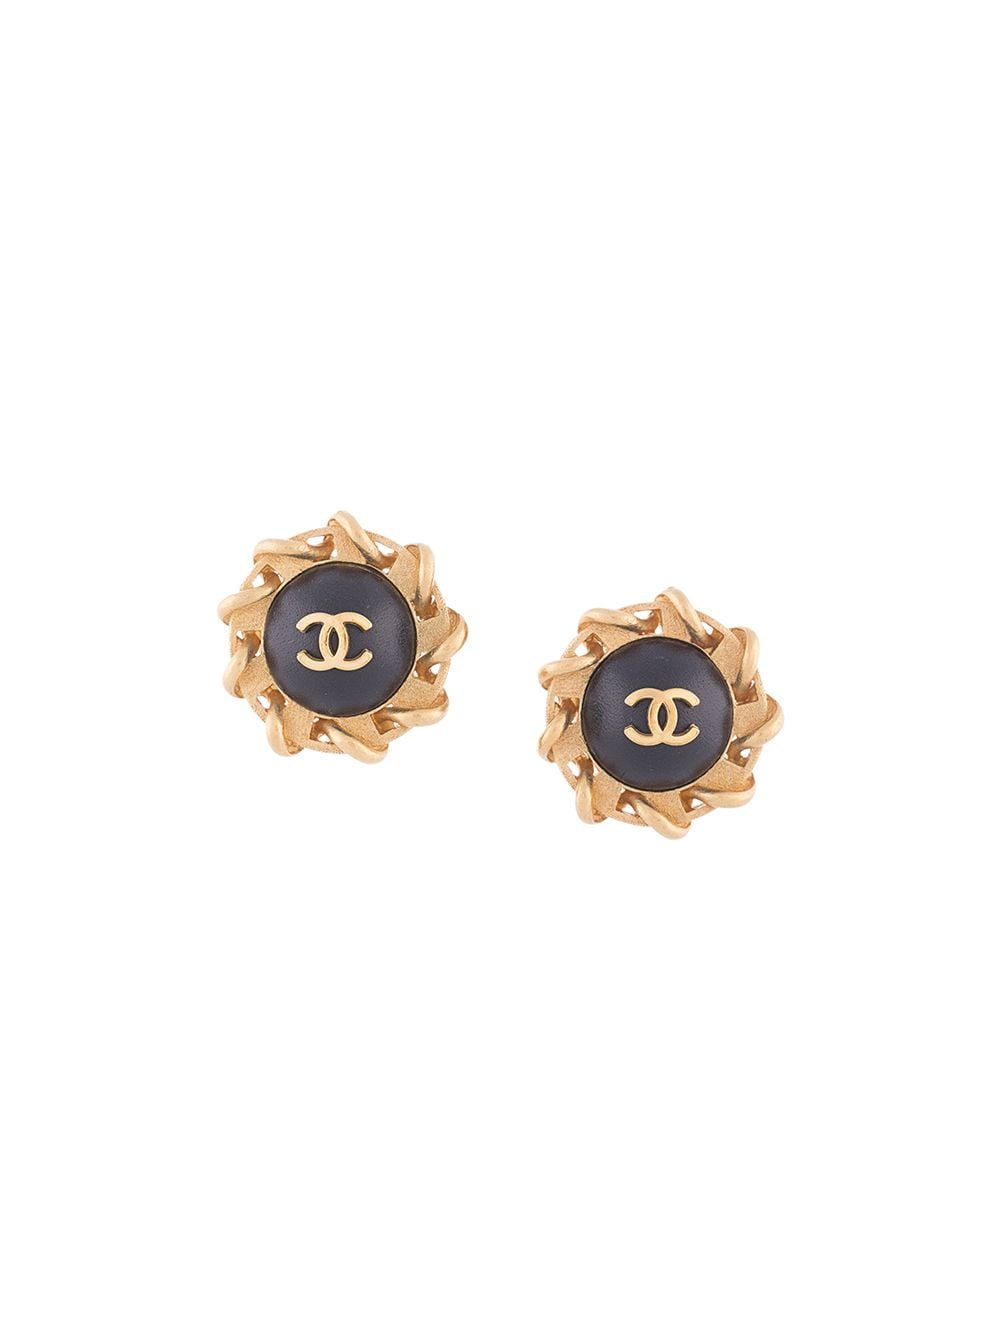 Chanel Pre-Owned sun motif CC earrings - GOLD von Chanel Pre-Owned